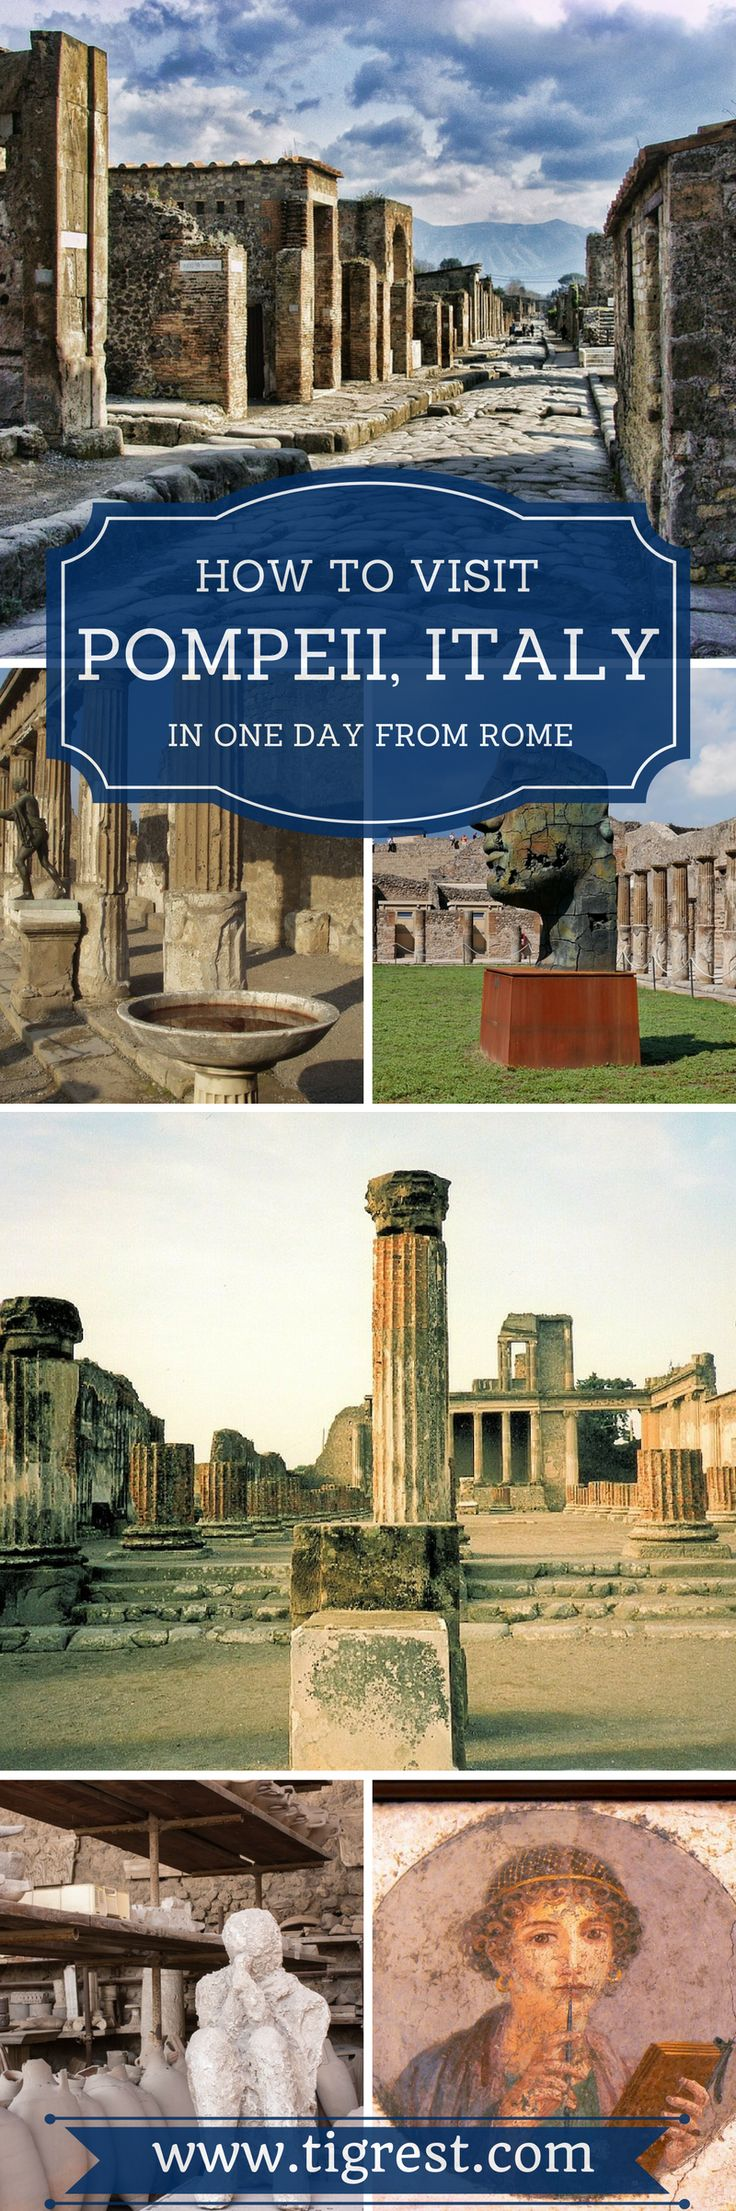 Tips for visiting Pompeii Italy - how to get there, things to do and see, where to eat, how to get tickets and much more!